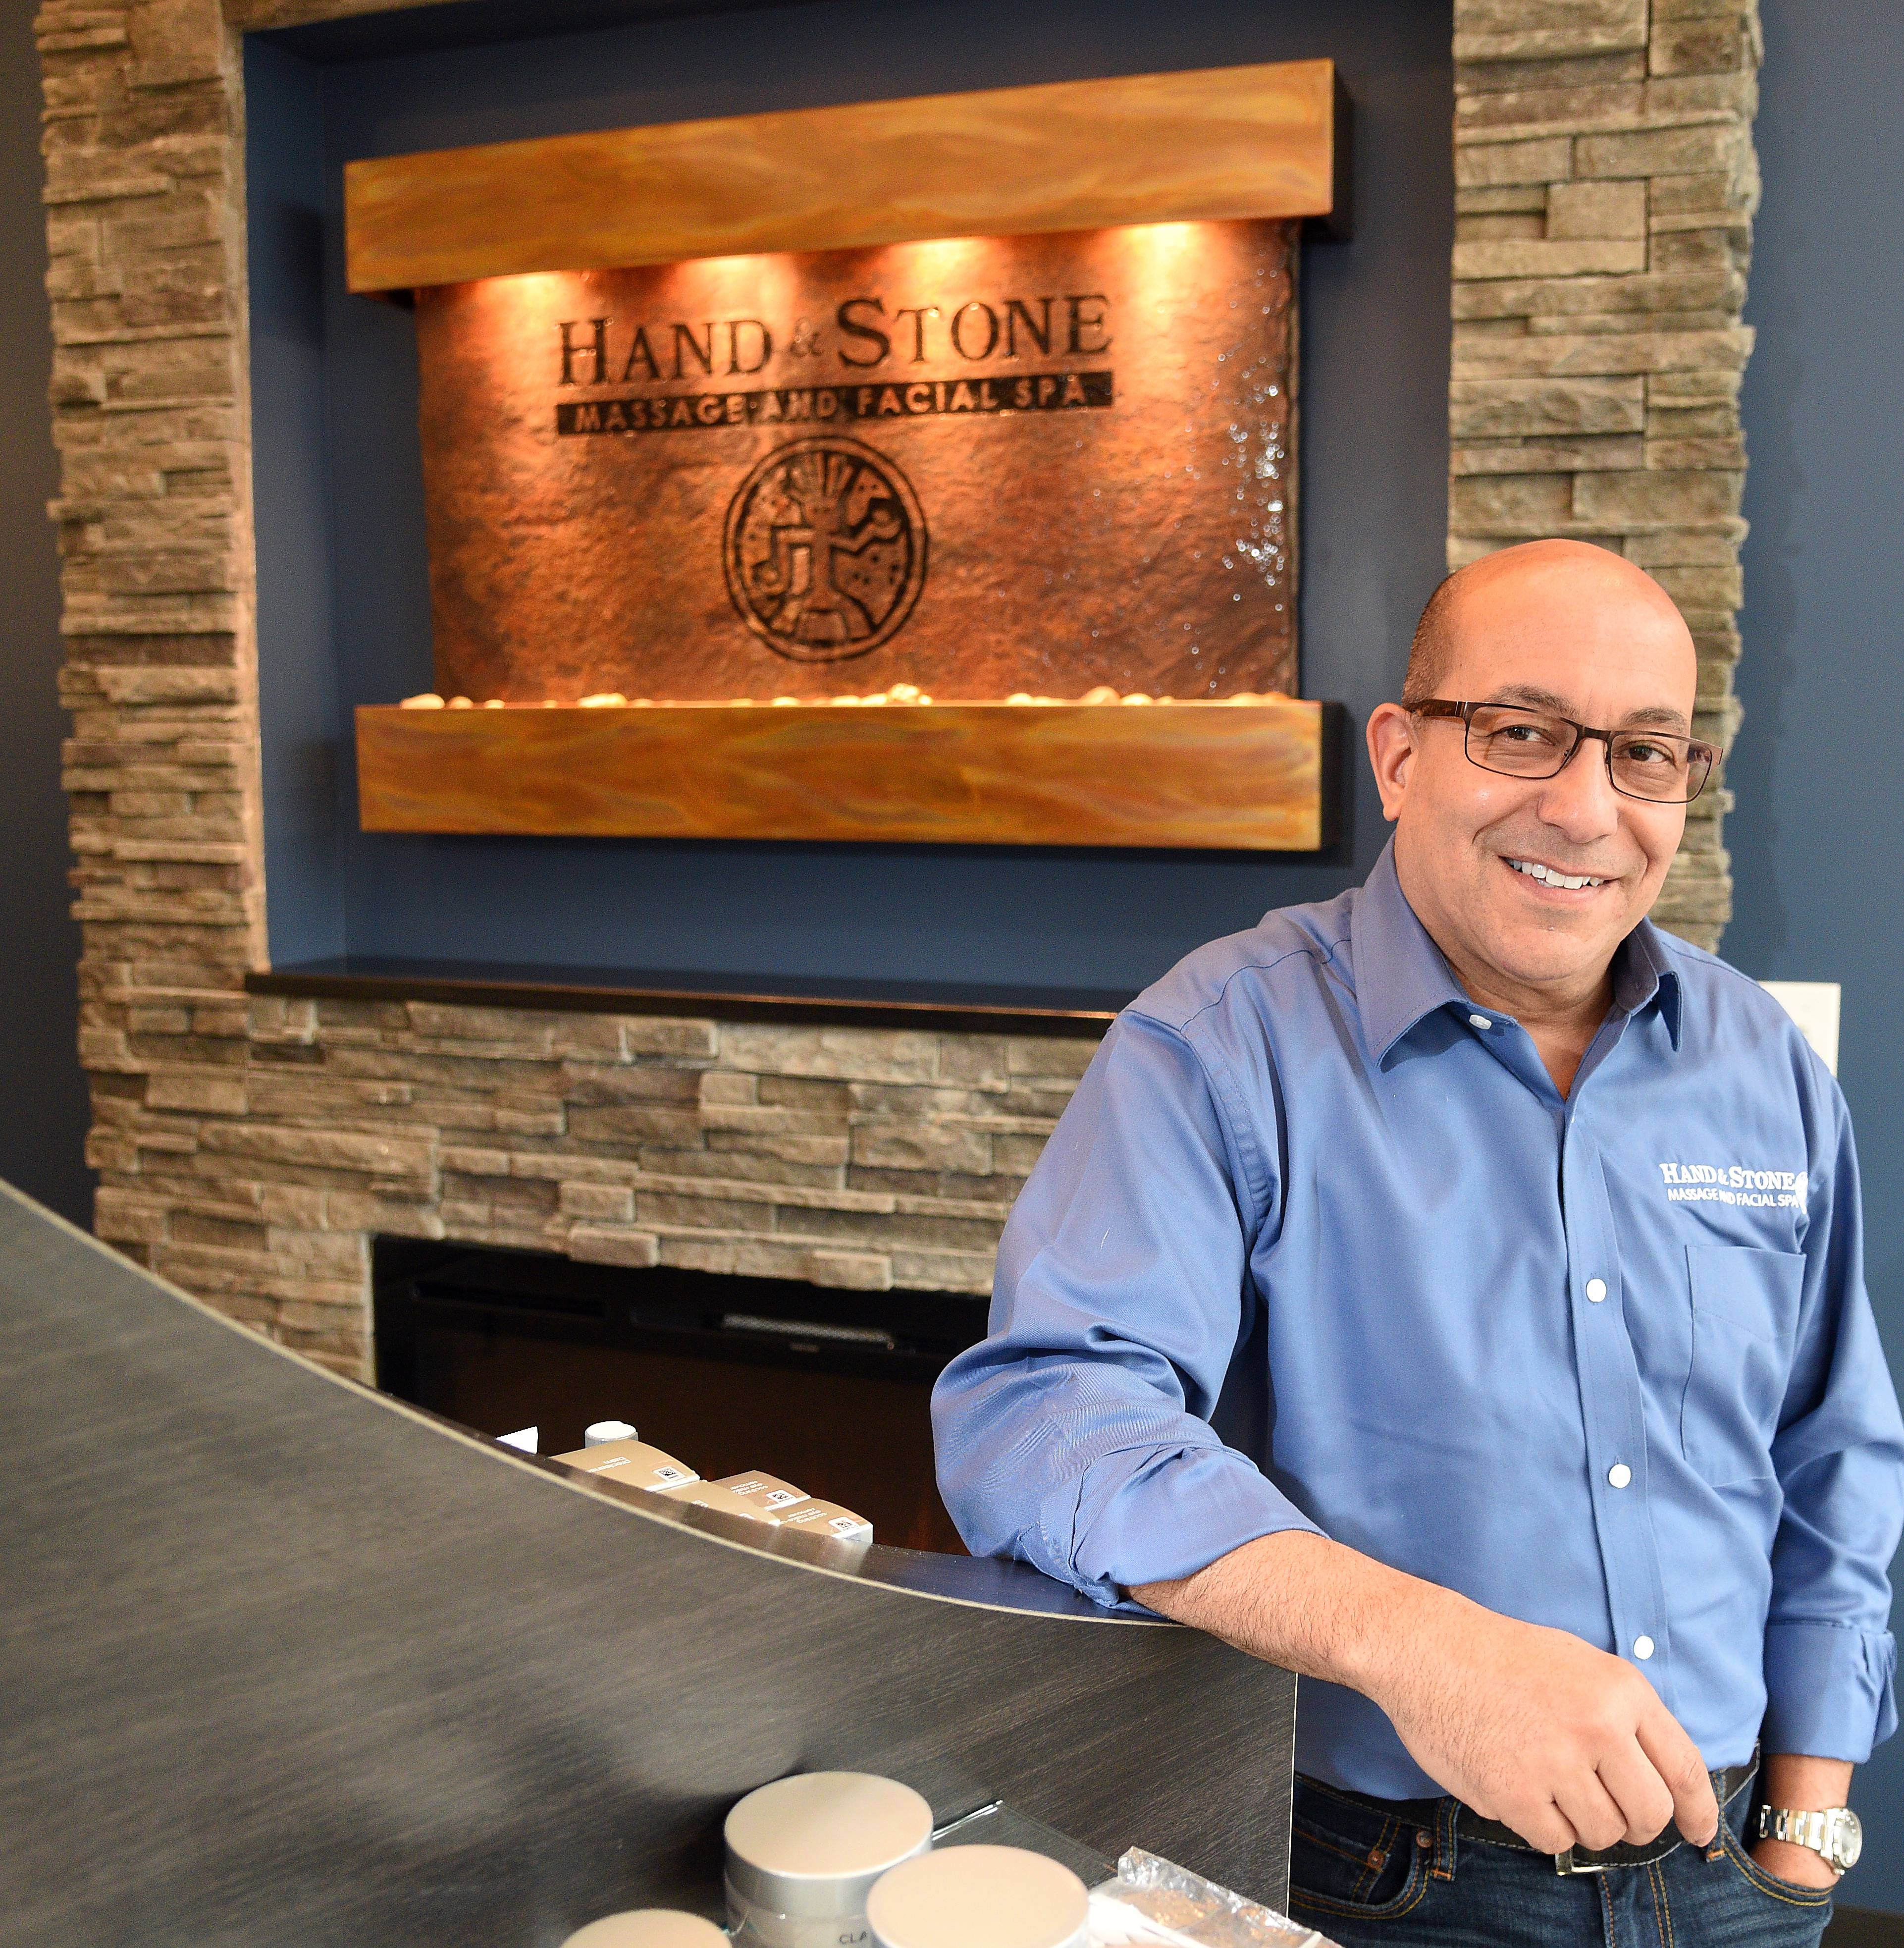 Bill Christy of St. Charles went from busy, globe-trotting CEO to owning three locations of Hand & Stone Massage and Facial Spa, including this one that opened Monday in South Elgin.